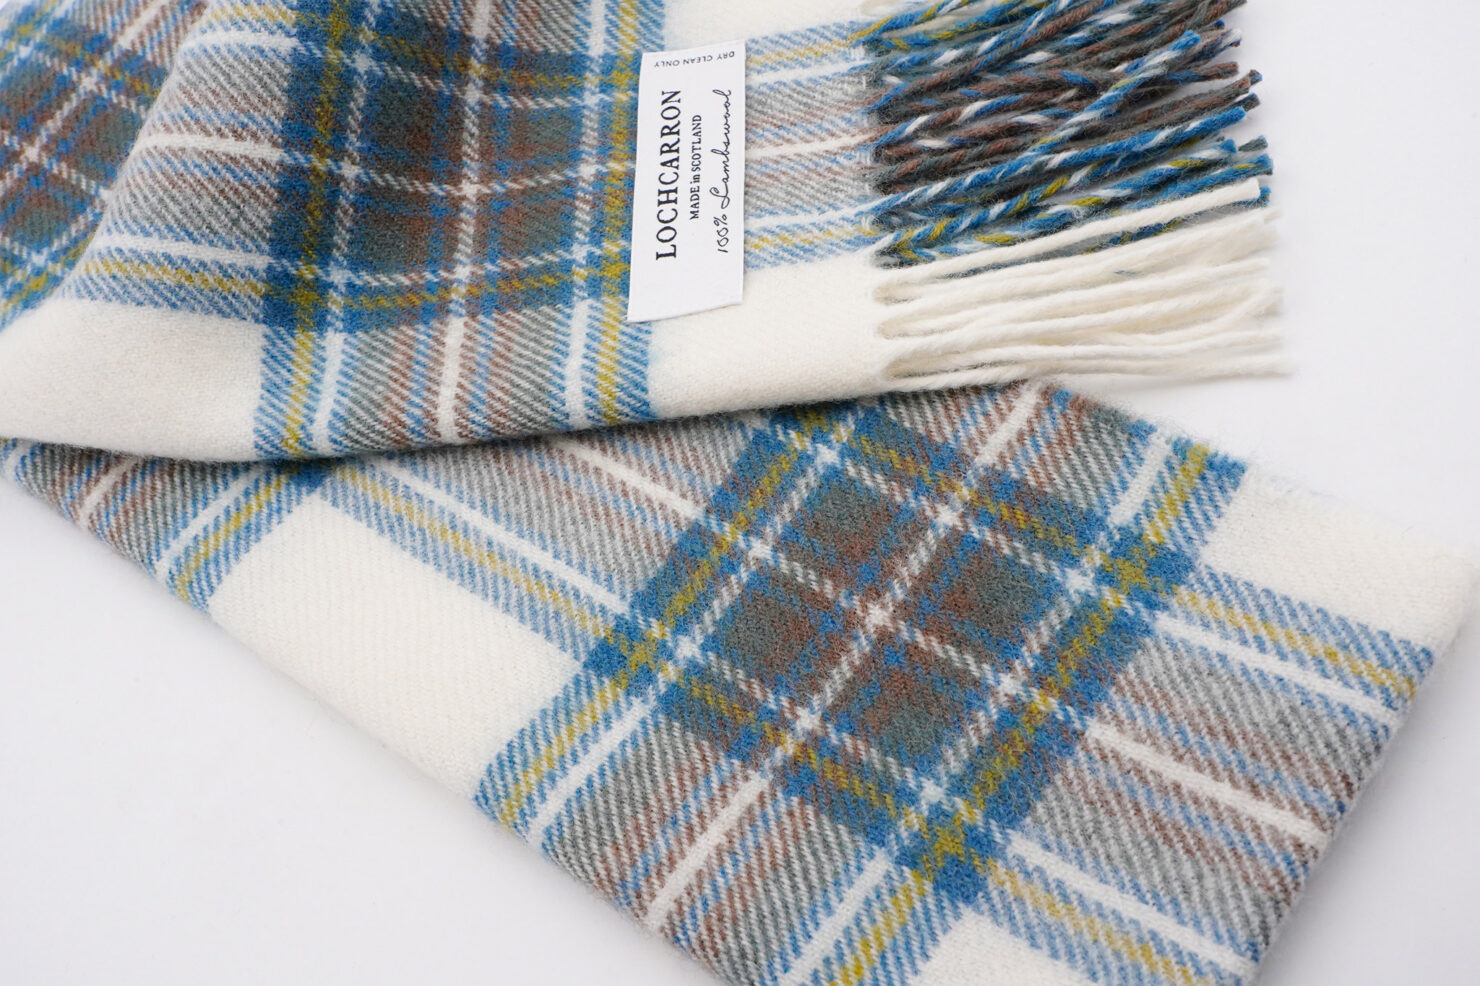 BRUSHWOOL LONG STEWART BLUE DRESS SCARF - LOCHCARRON OF SCOTLAND